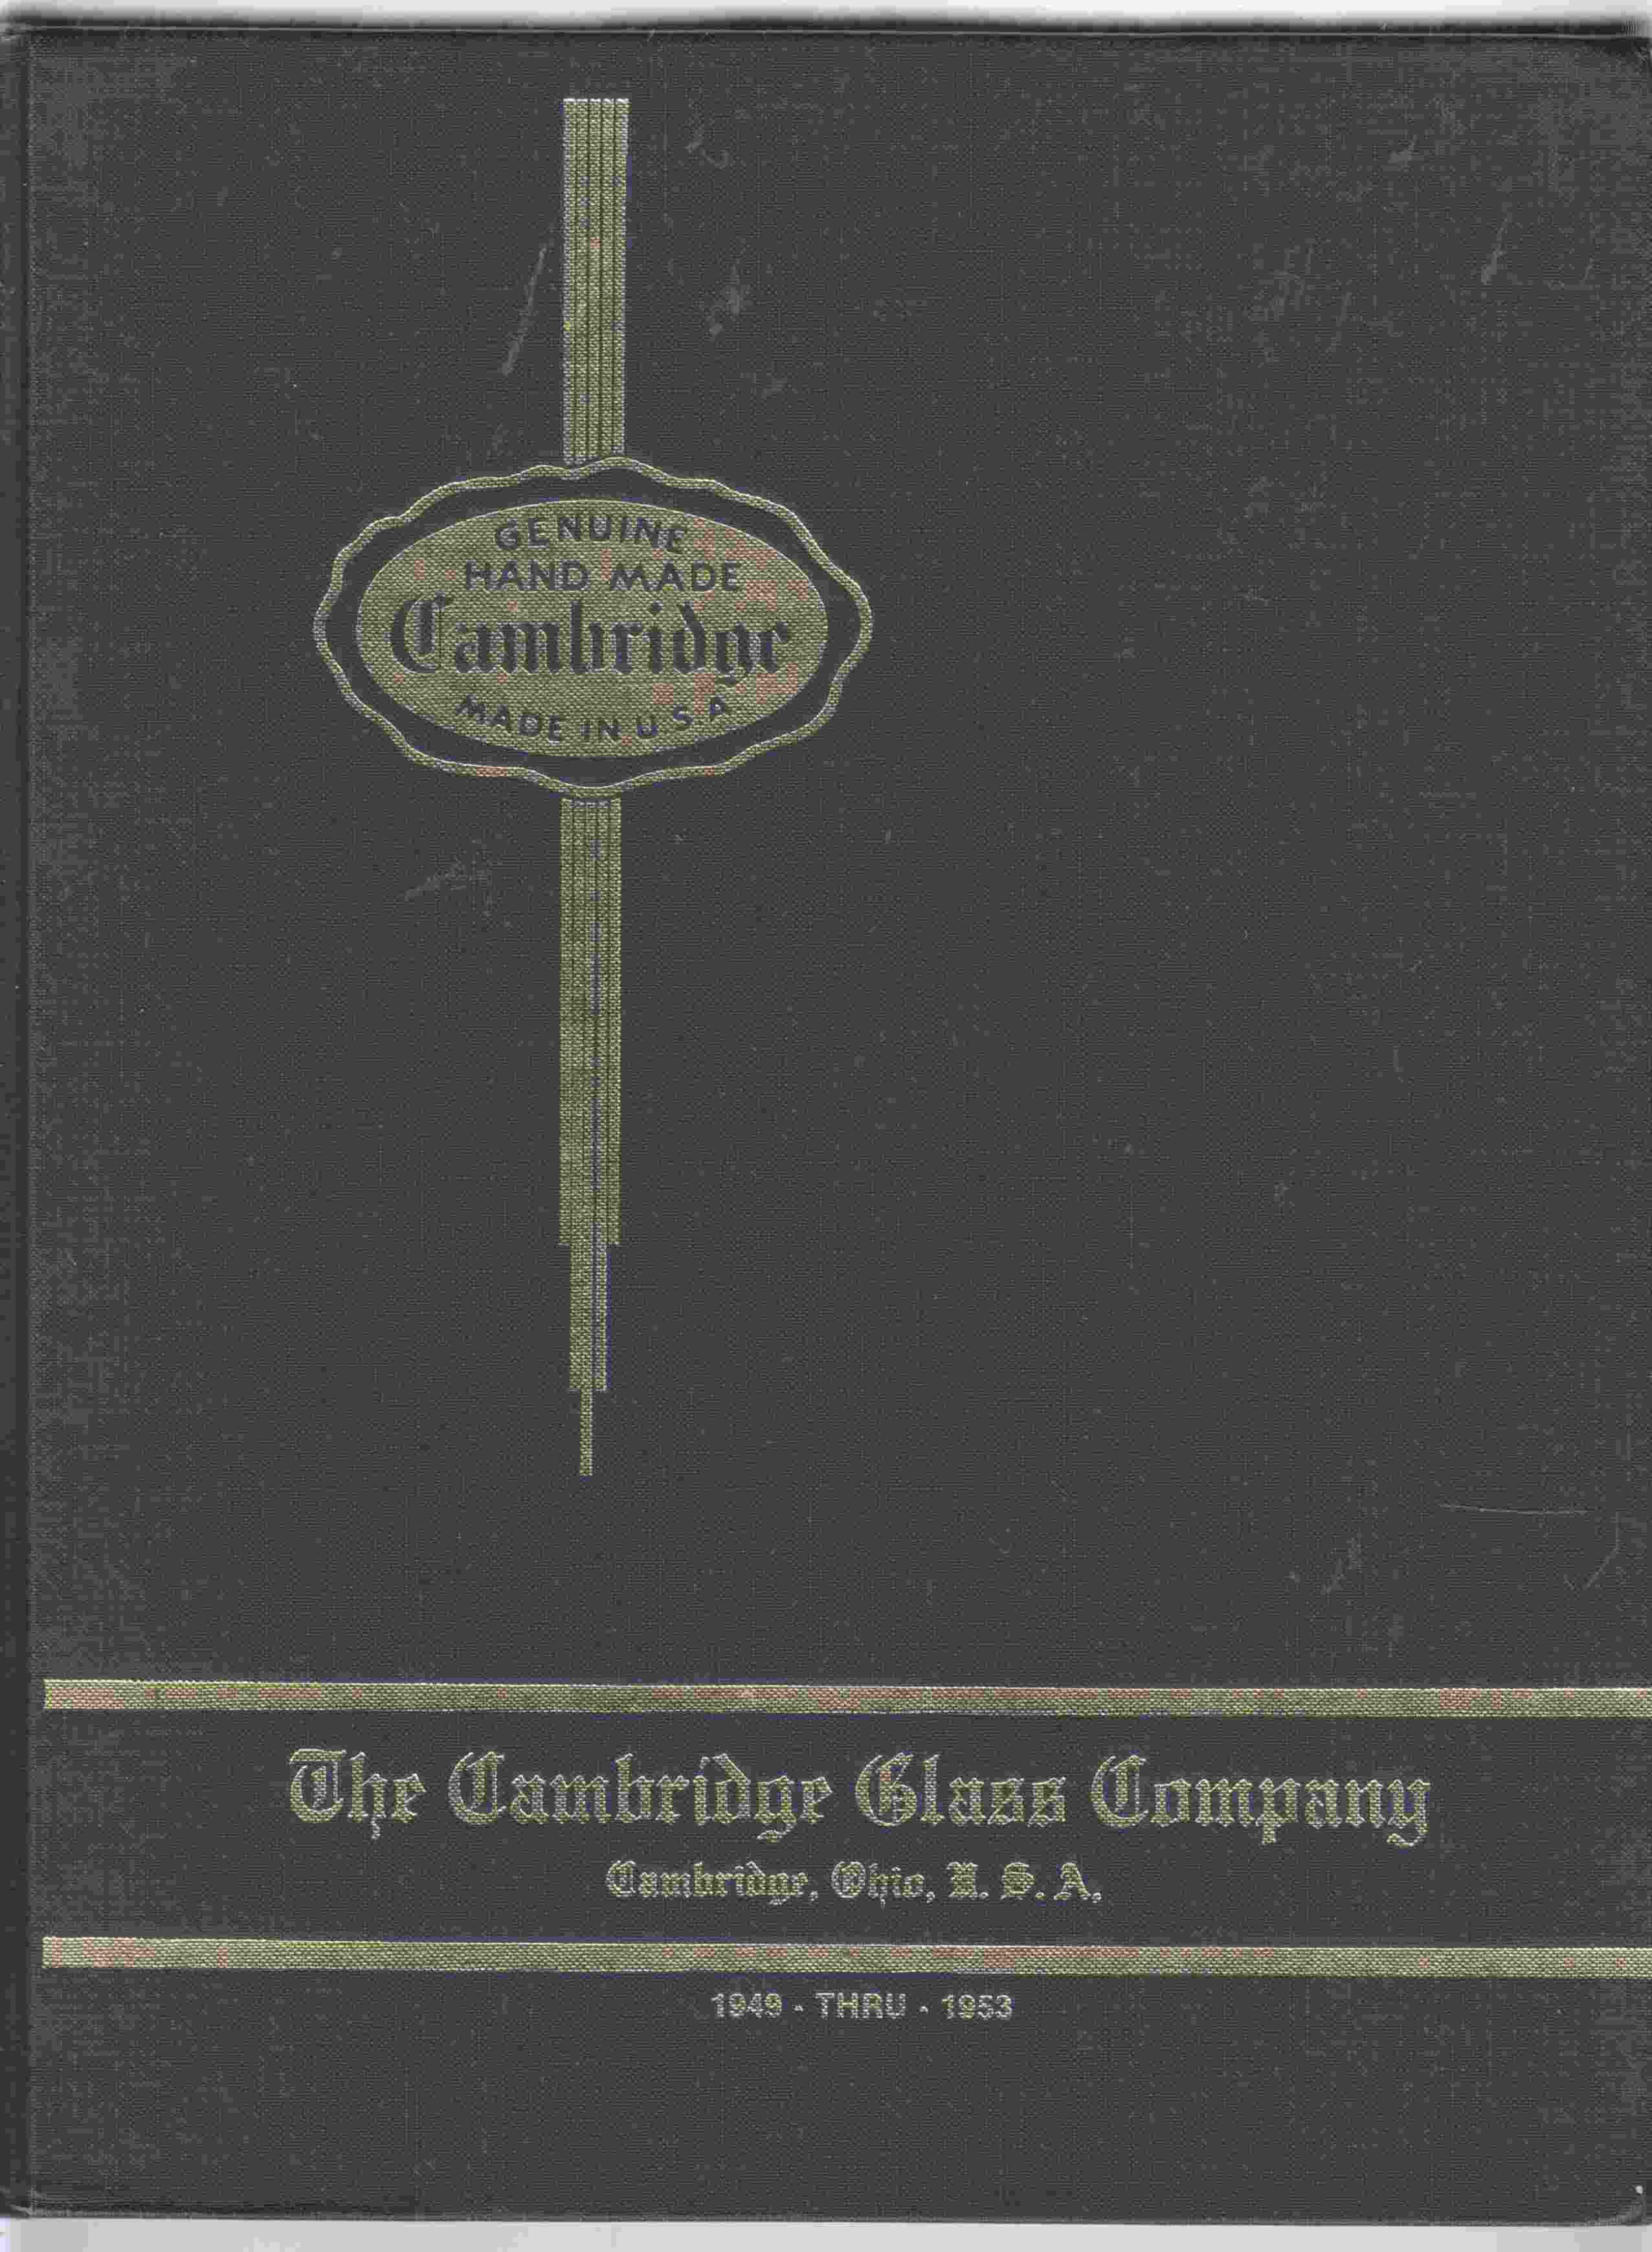 Image for The Cambridge Glass Co. Catalog 1949 Thru 1953